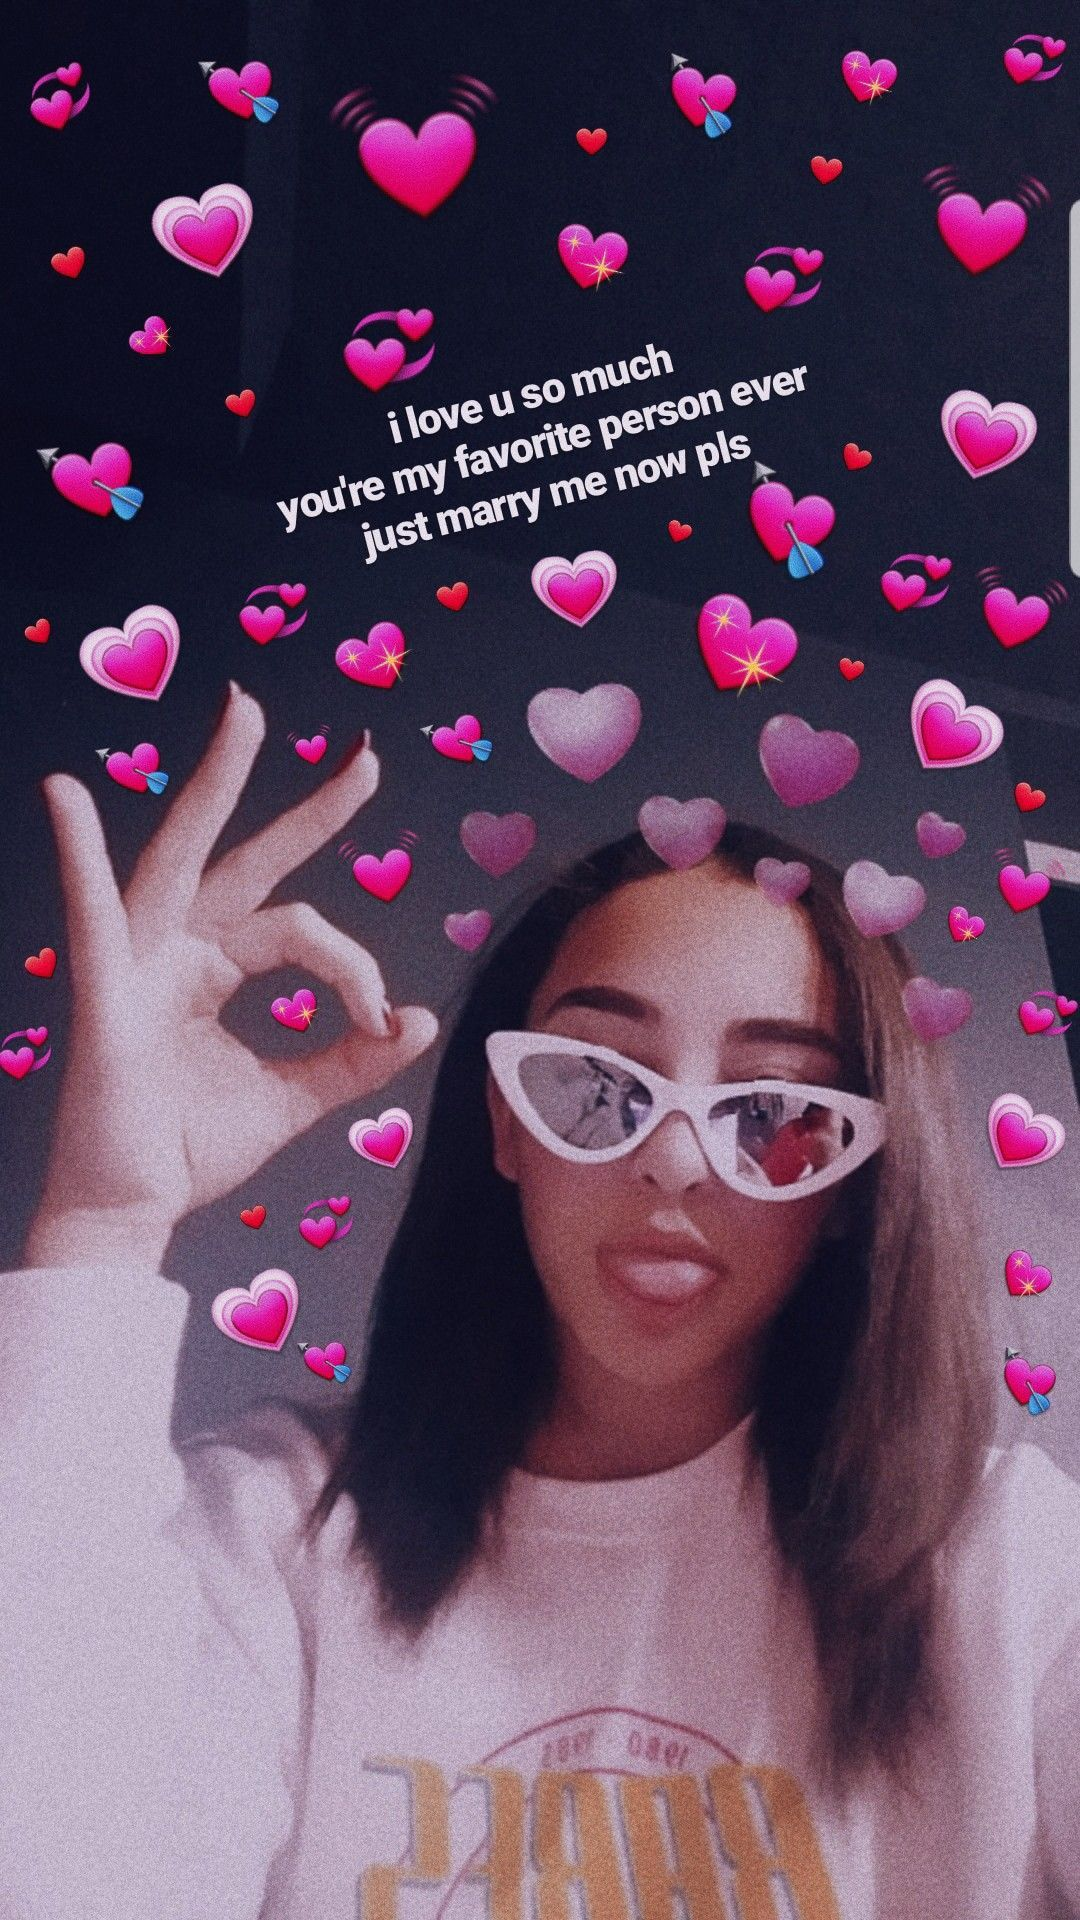 Send This To Your Crush In 2021 Valentines Memes Cute Love Memes Crush Memes